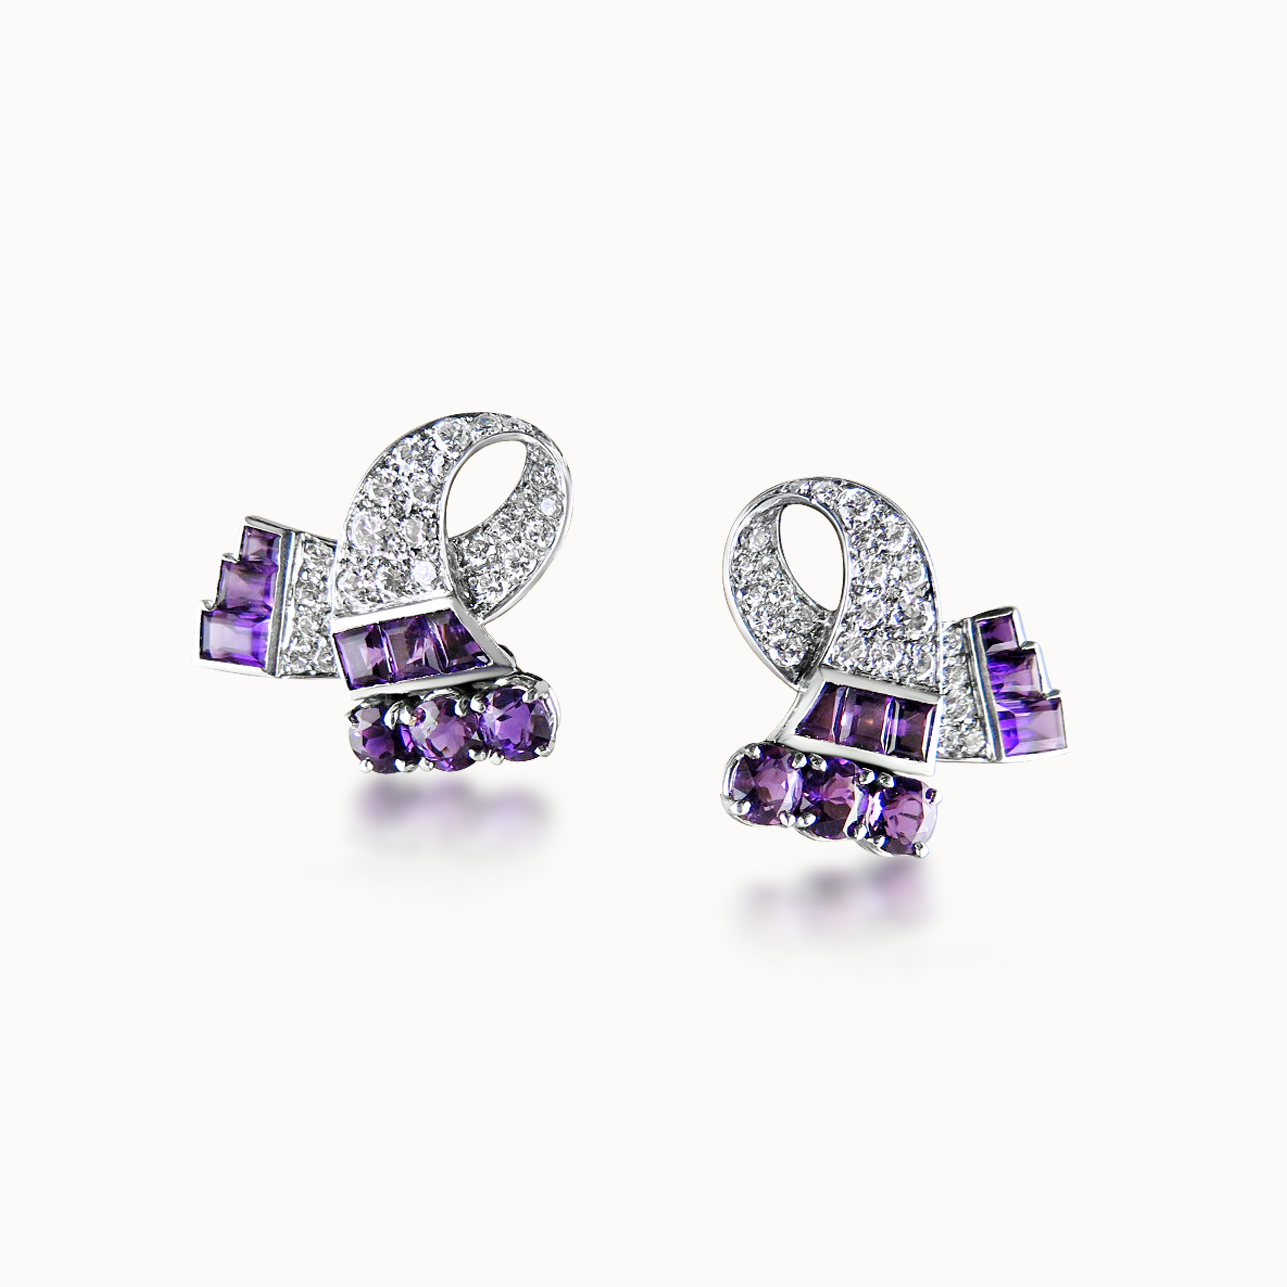 AMETHYST AND DIAMOND EARCLIPS